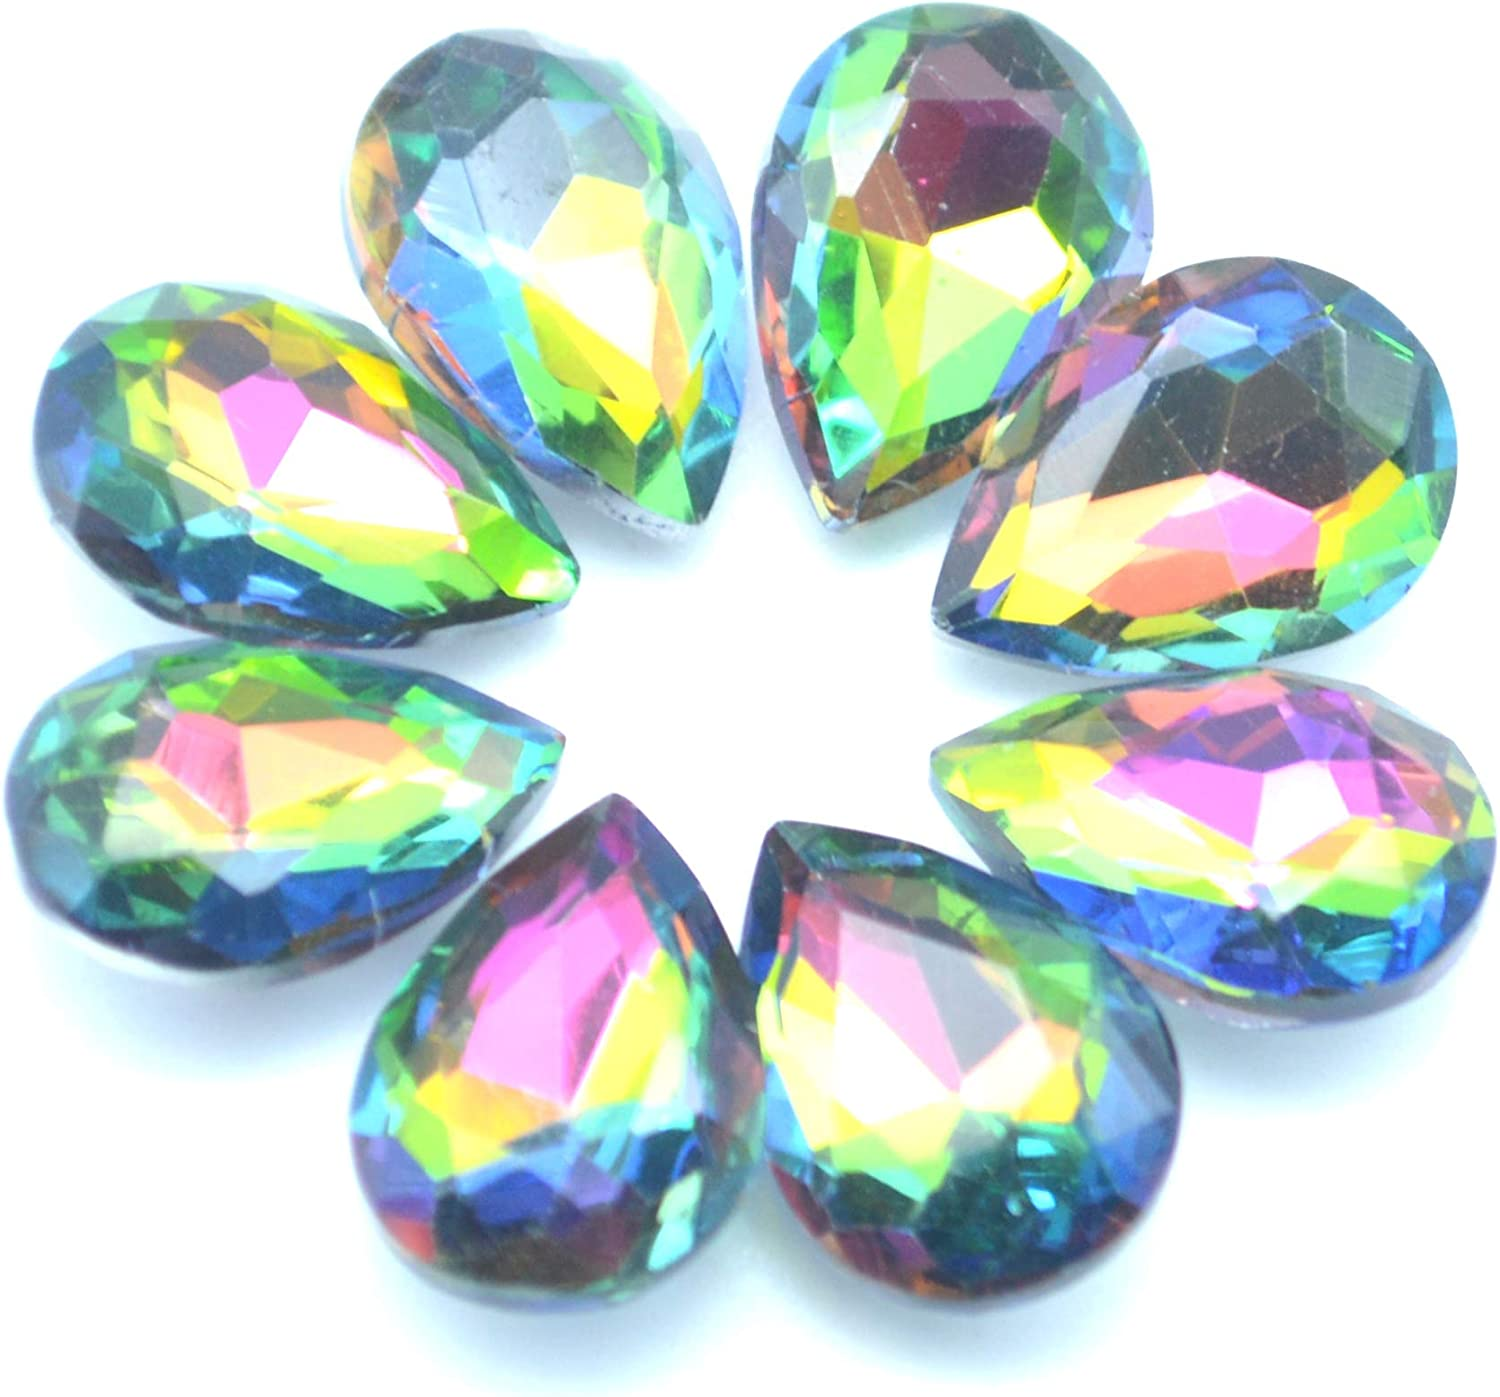 80pcs Colorful Teardrop Crystal Bead Jewelry Making DIY Faceted Glass Beads